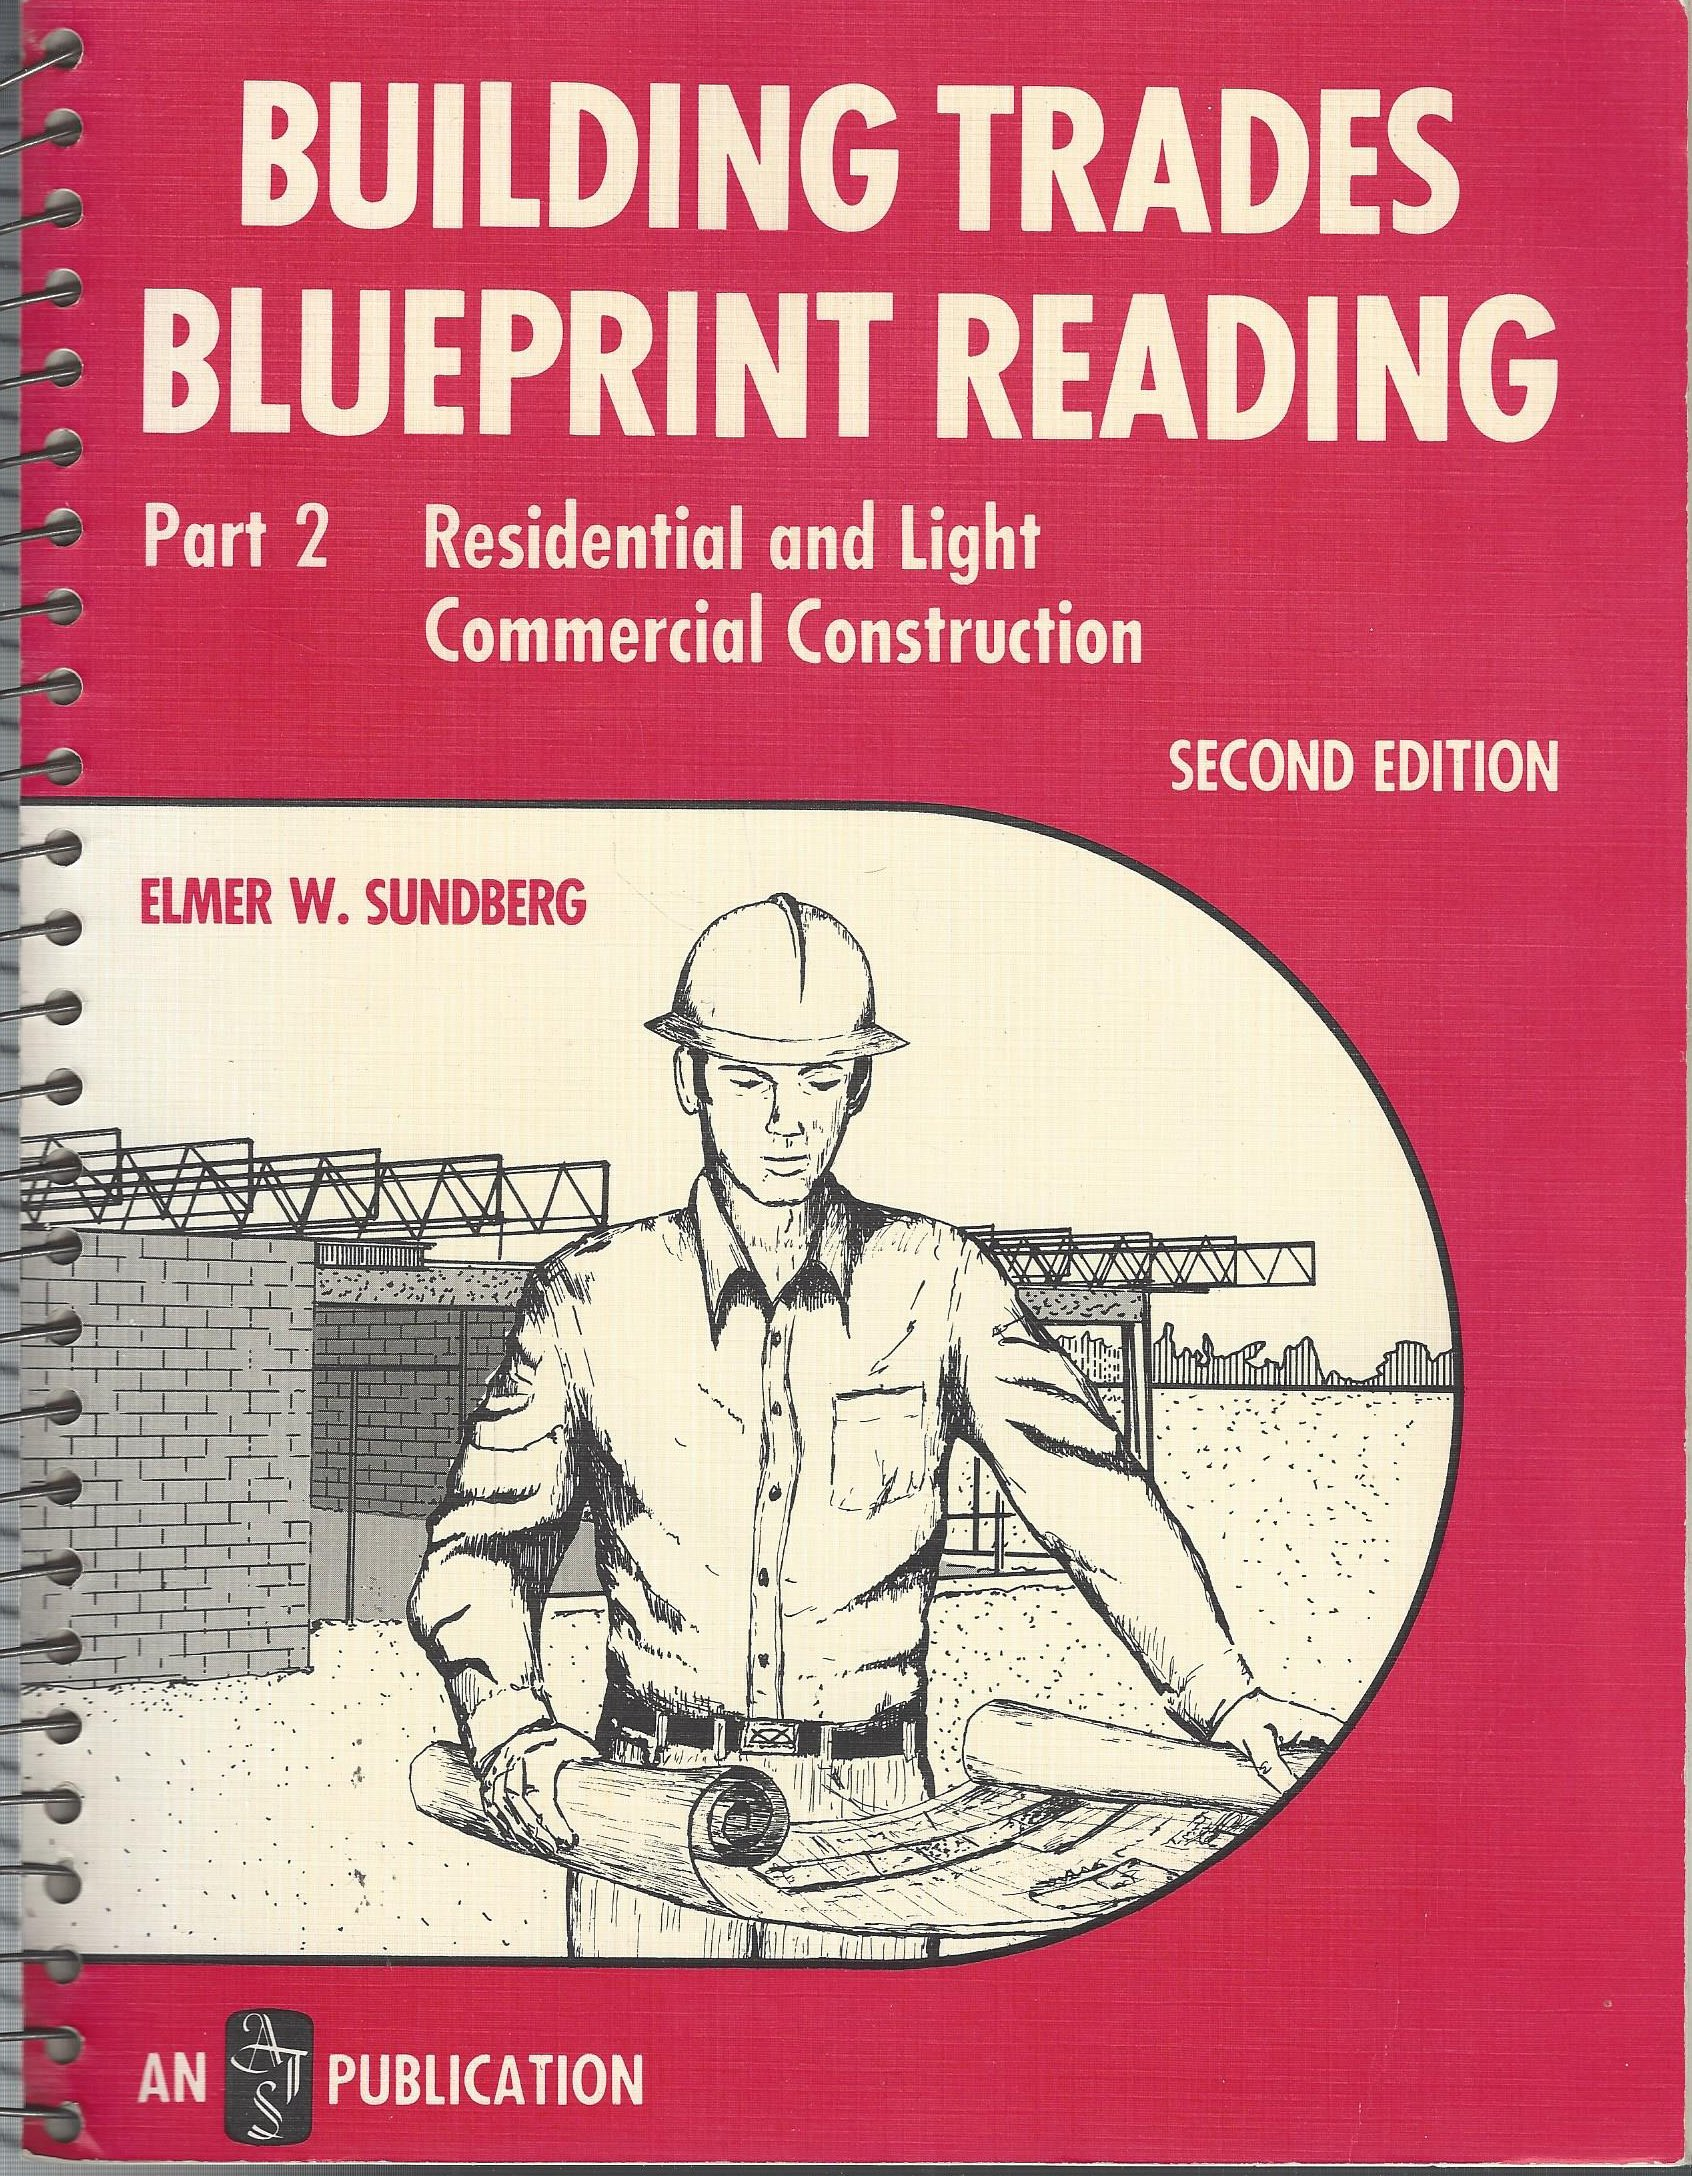 Building trades blueprint reading part 2 residential light building trades blueprint reading part 2 residential light commercial construction elmer w sundberg 9780826904478 amazon books malvernweather Image collections